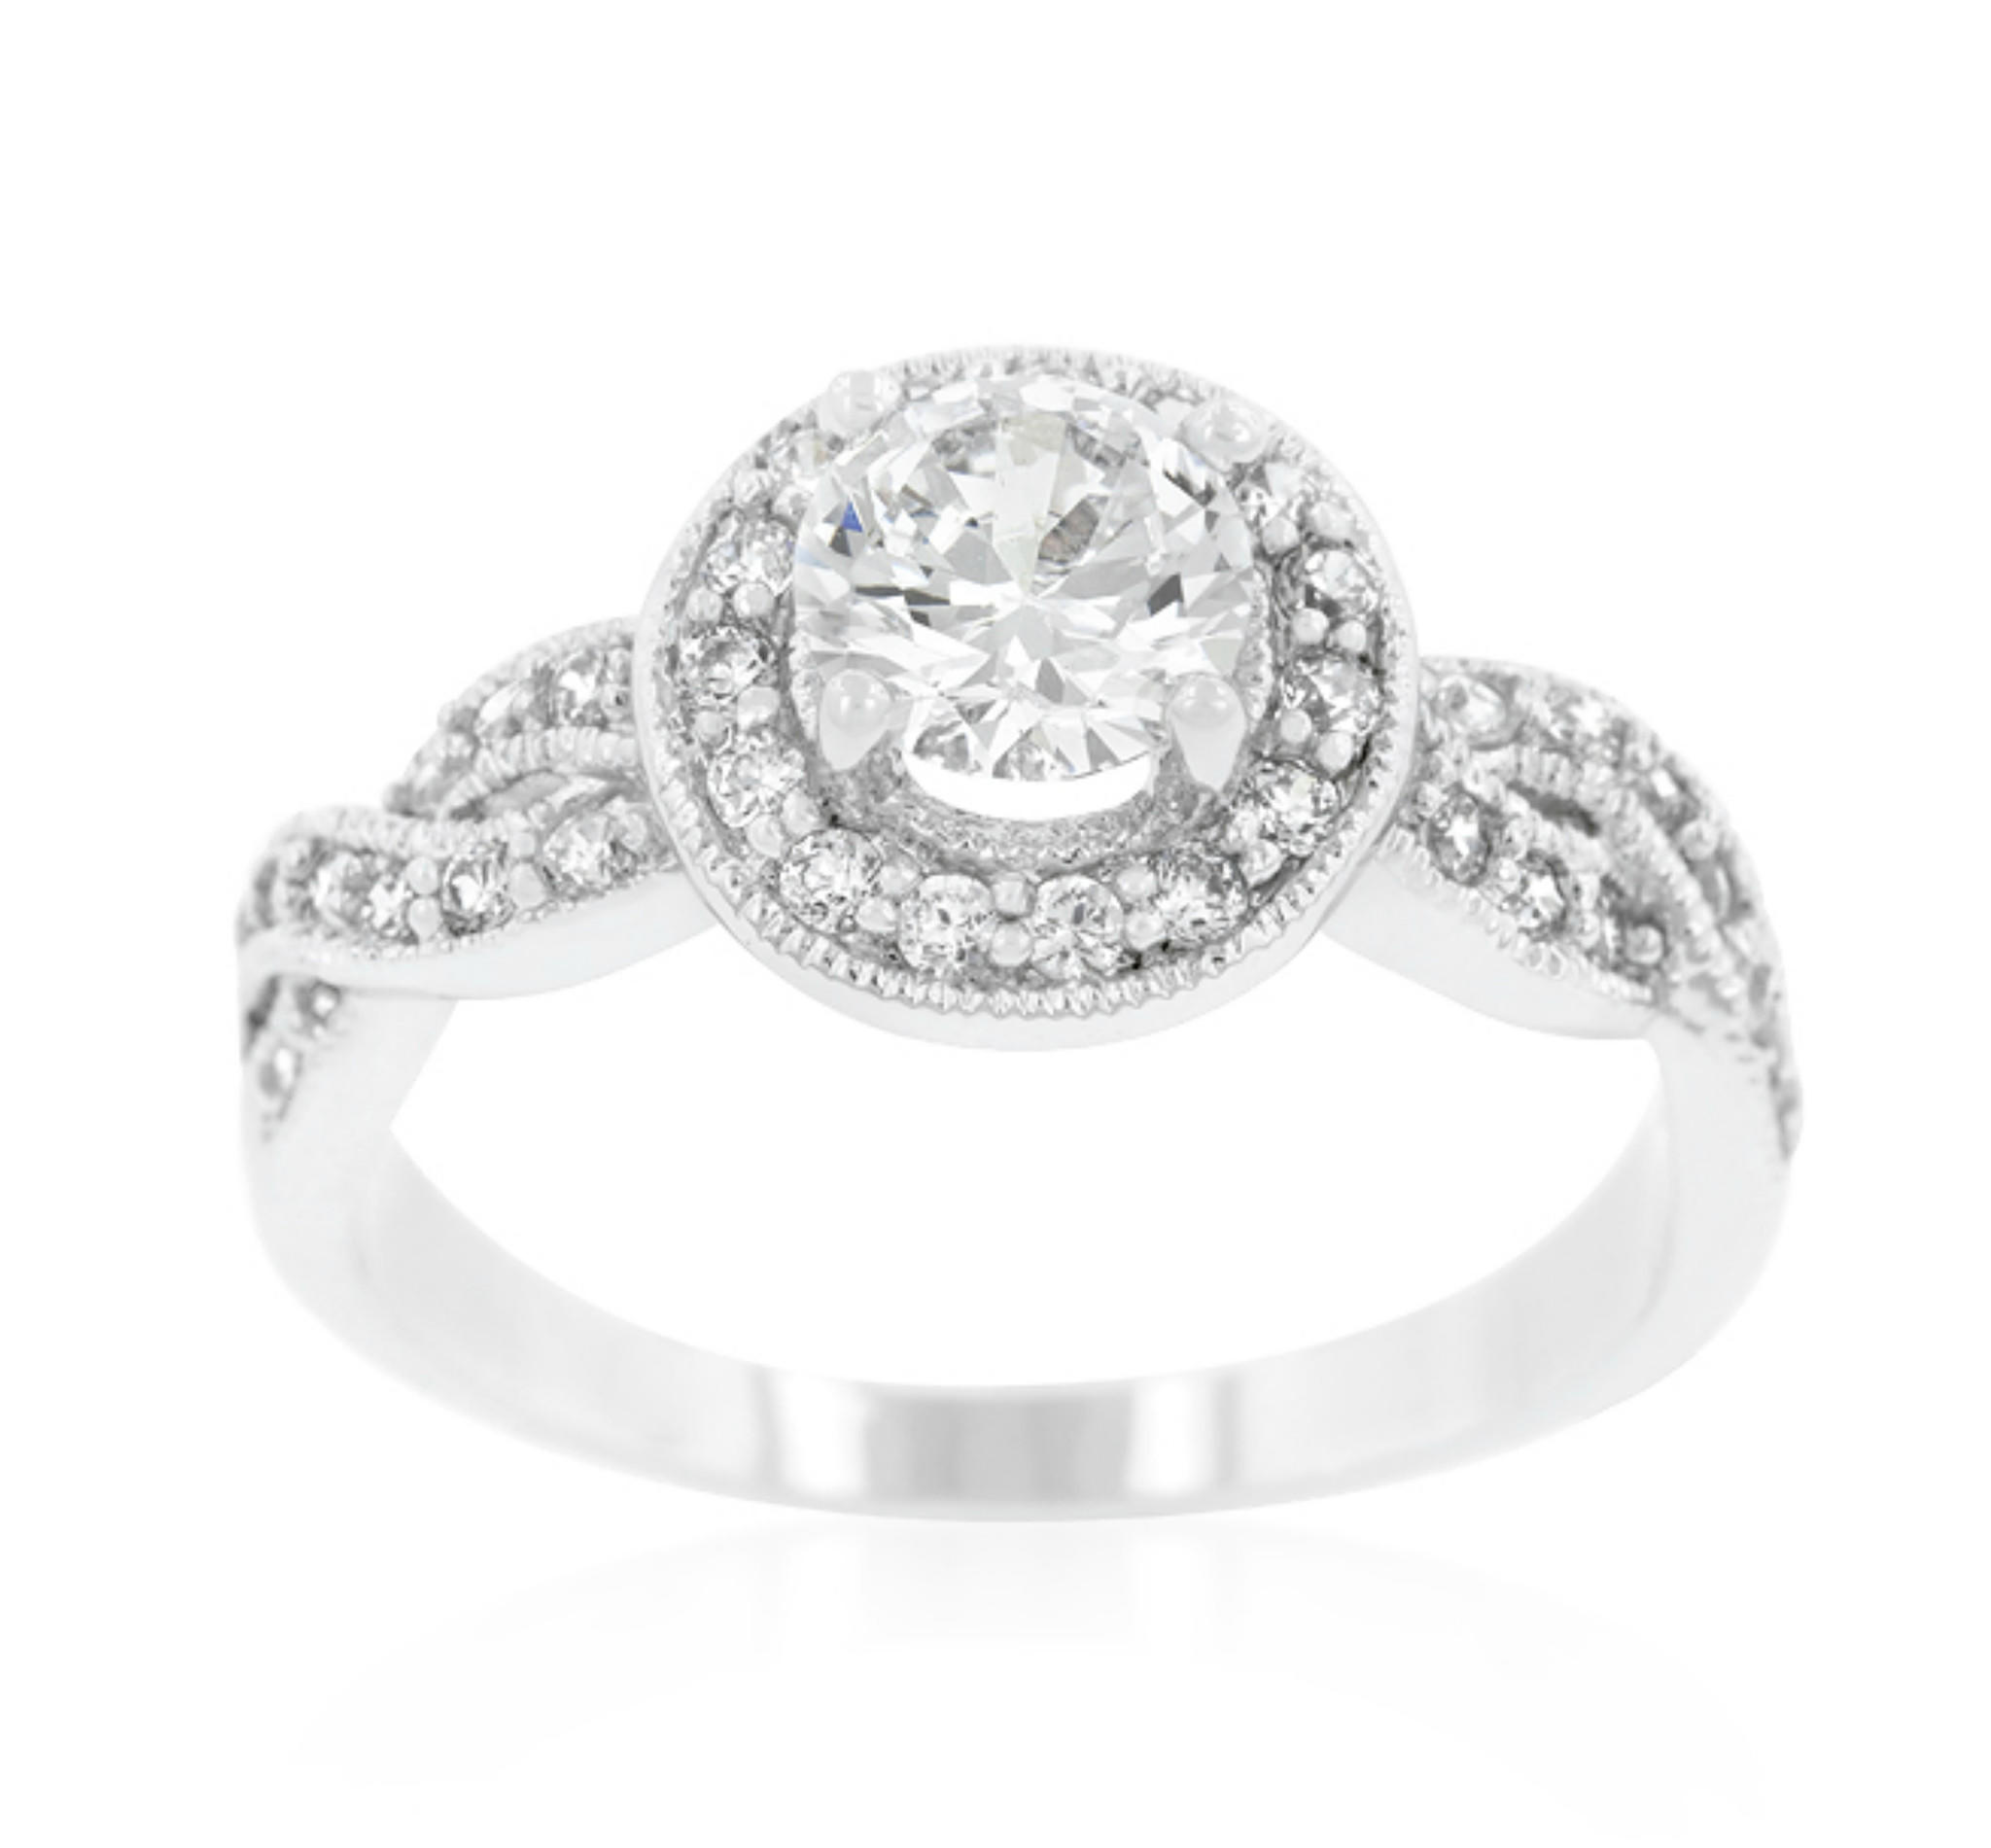 grace rings full wedding for s anniversary luxury engagement of her tiffany year promise size